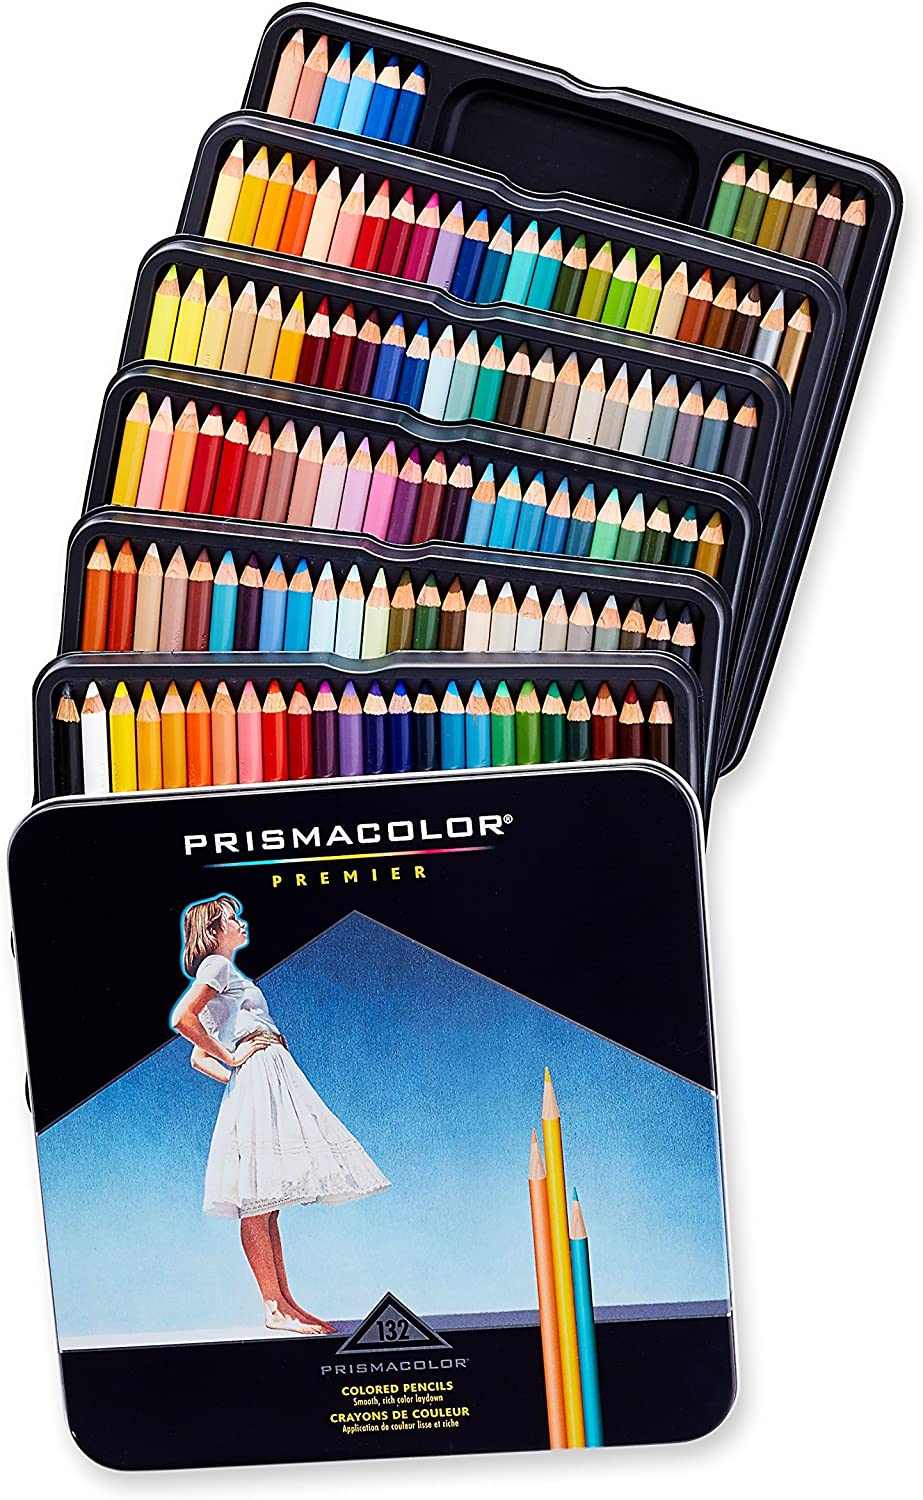 Sanford 4484 Prismacolor Drawing & Sketching Pencils, 0.70 mm, 132 Assorted Colors/Set : Wood Colored Pencils : Office Products